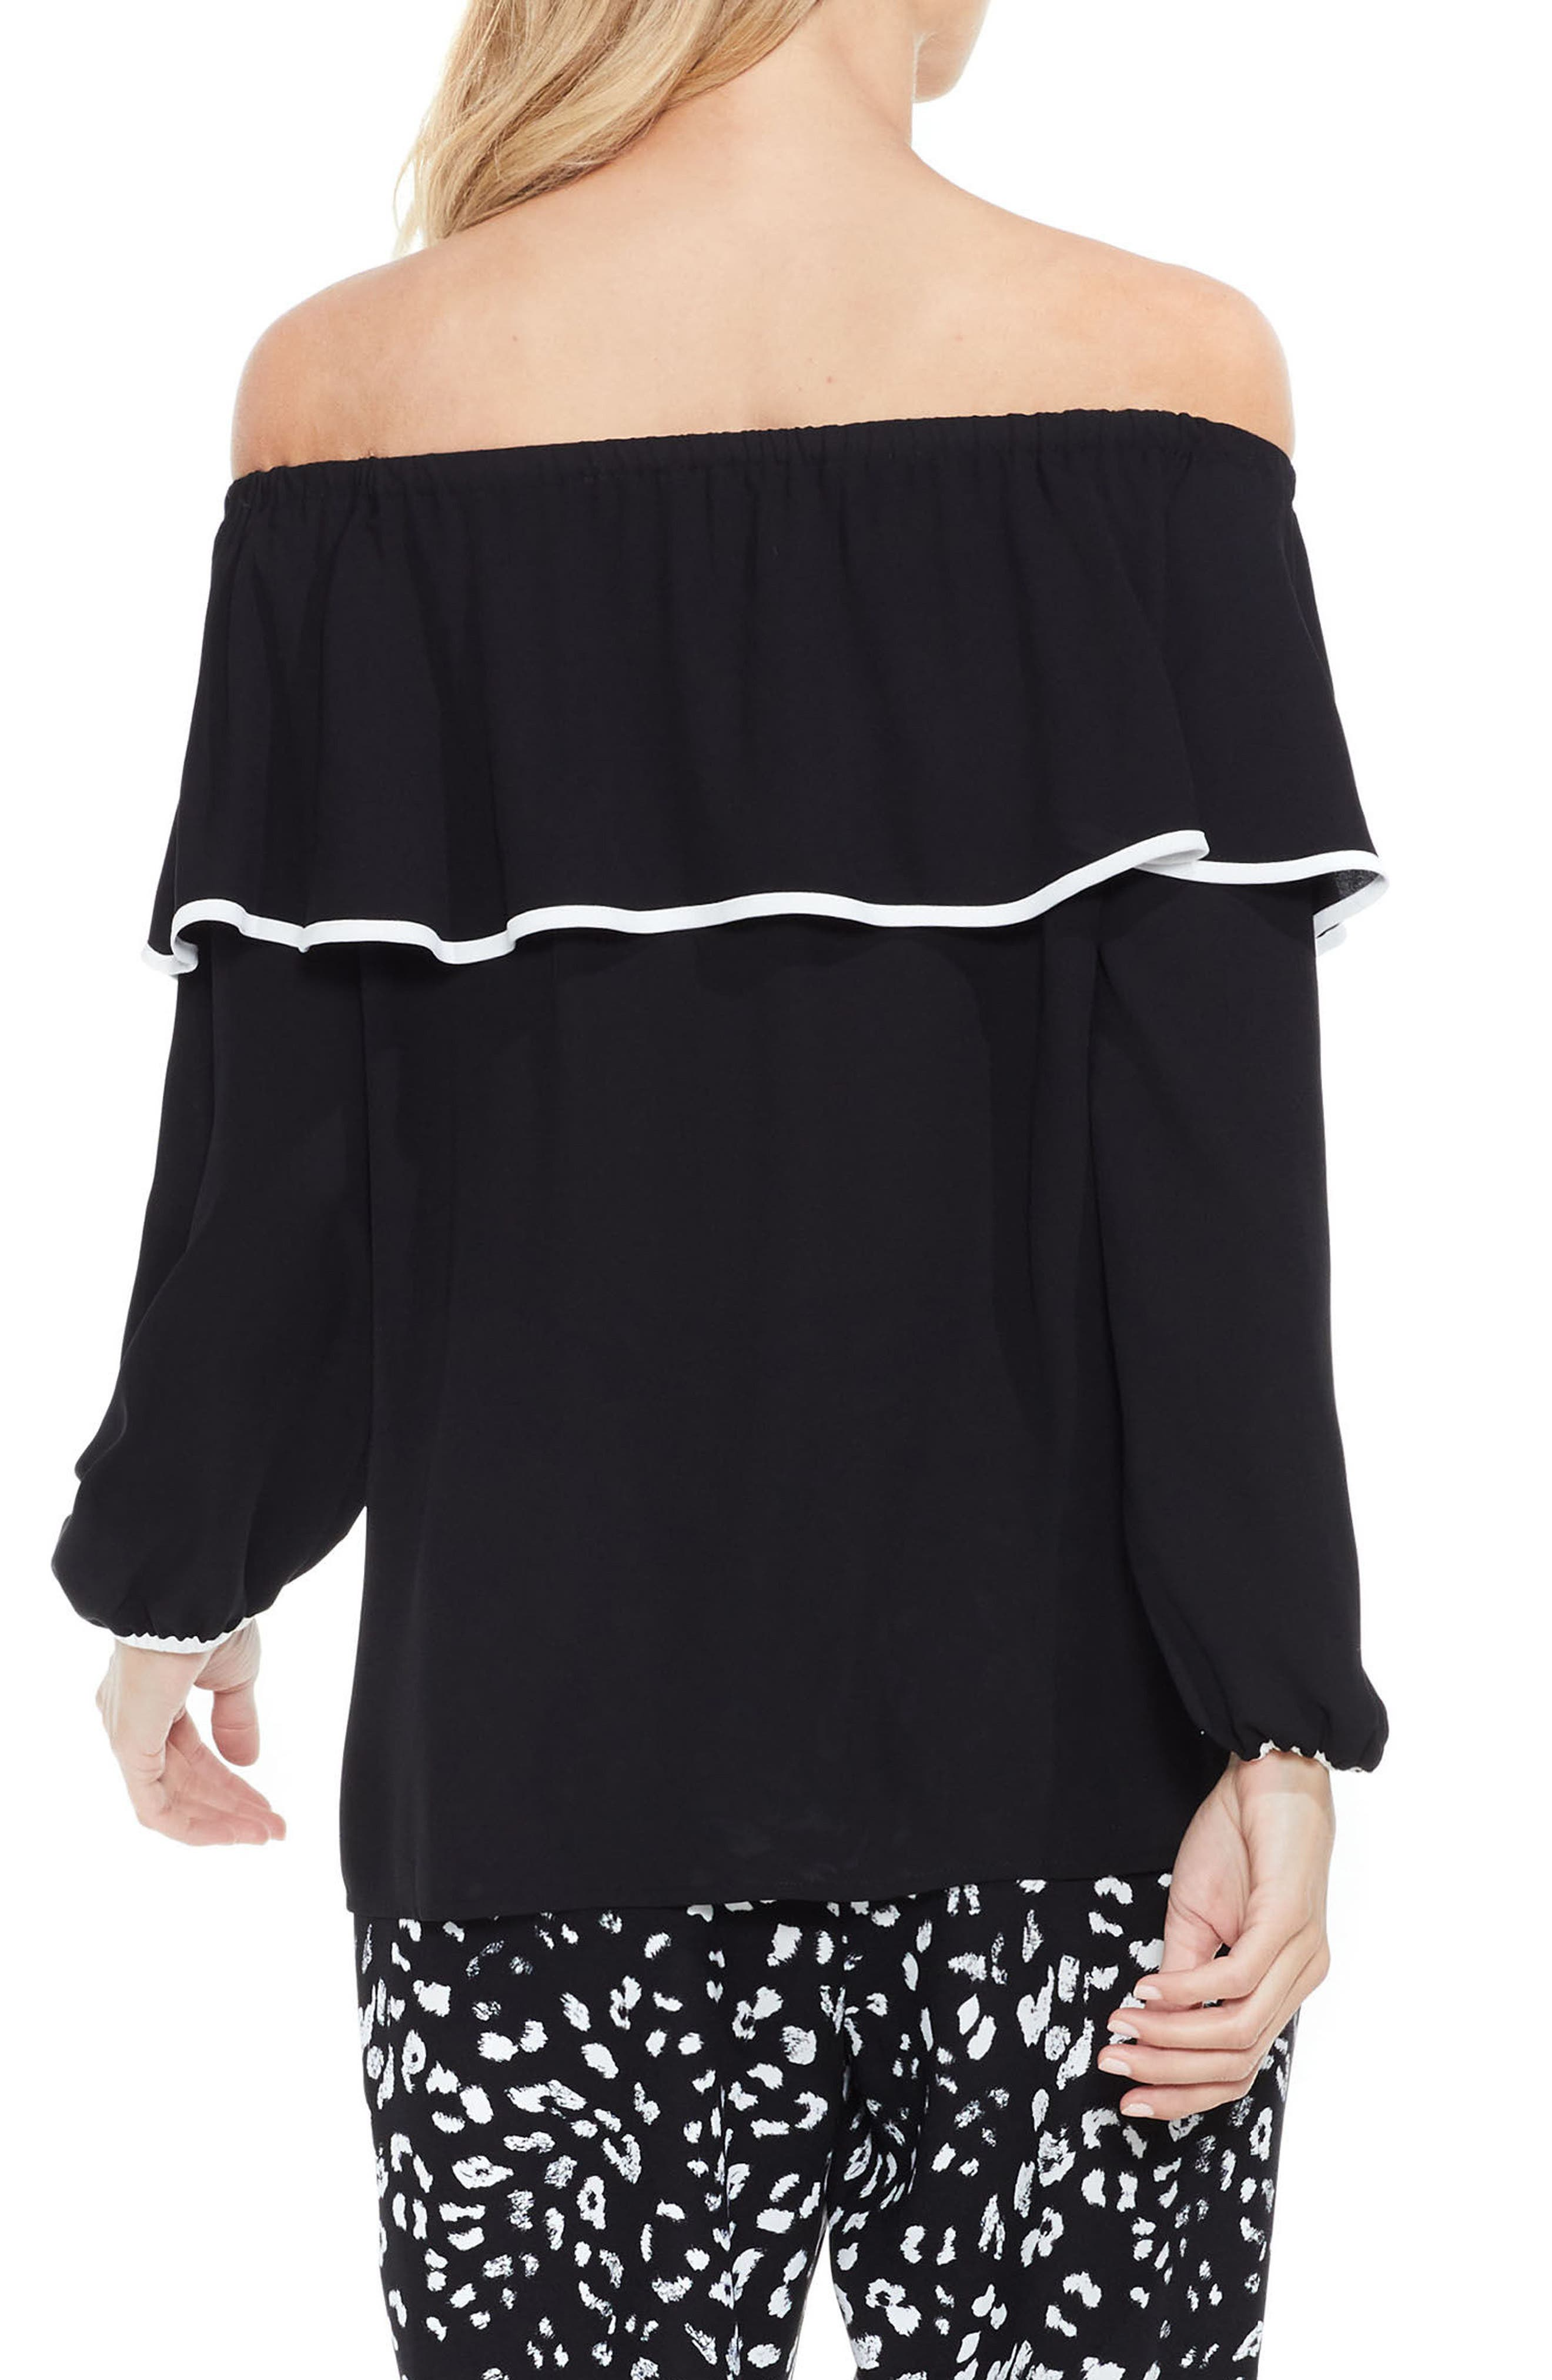 Ruffle Off the Shoulder Blouse,                             Alternate thumbnail 2, color,                             001